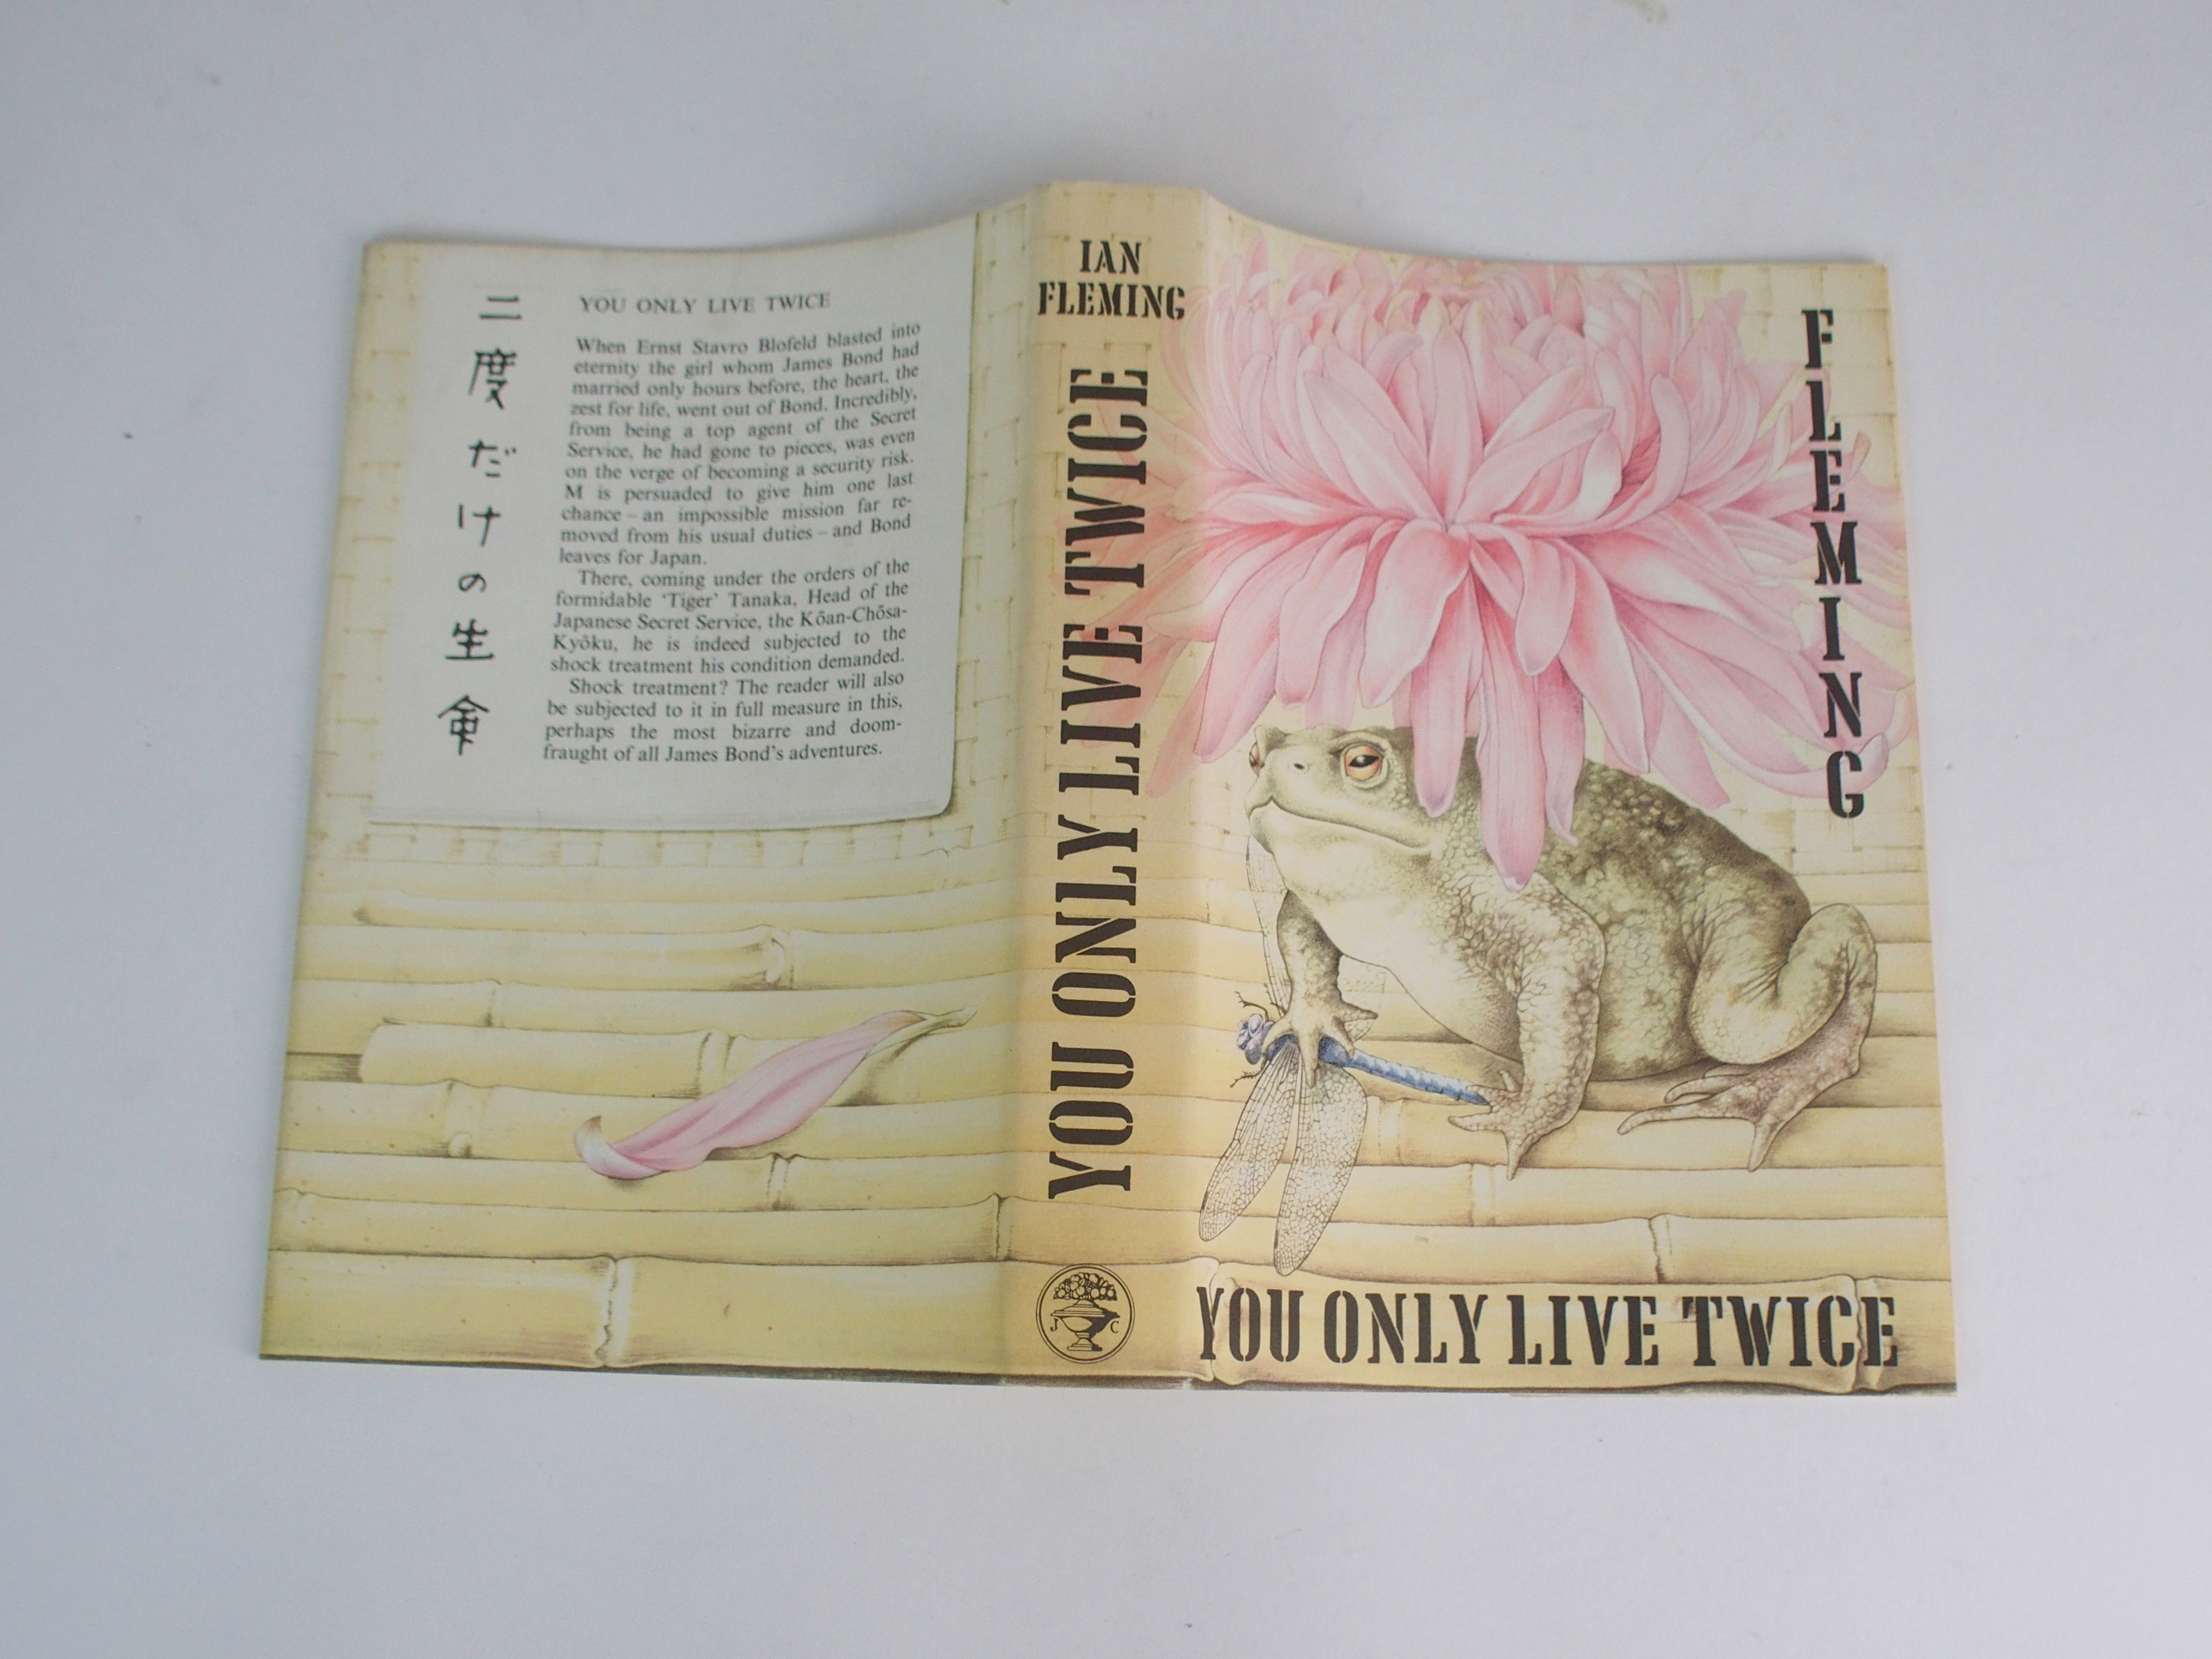 IAN FLEMING 'YOU ONLY LIVE TWICE' 1st edition 1964, unclipped with original dust jacket, published - Image 3 of 5